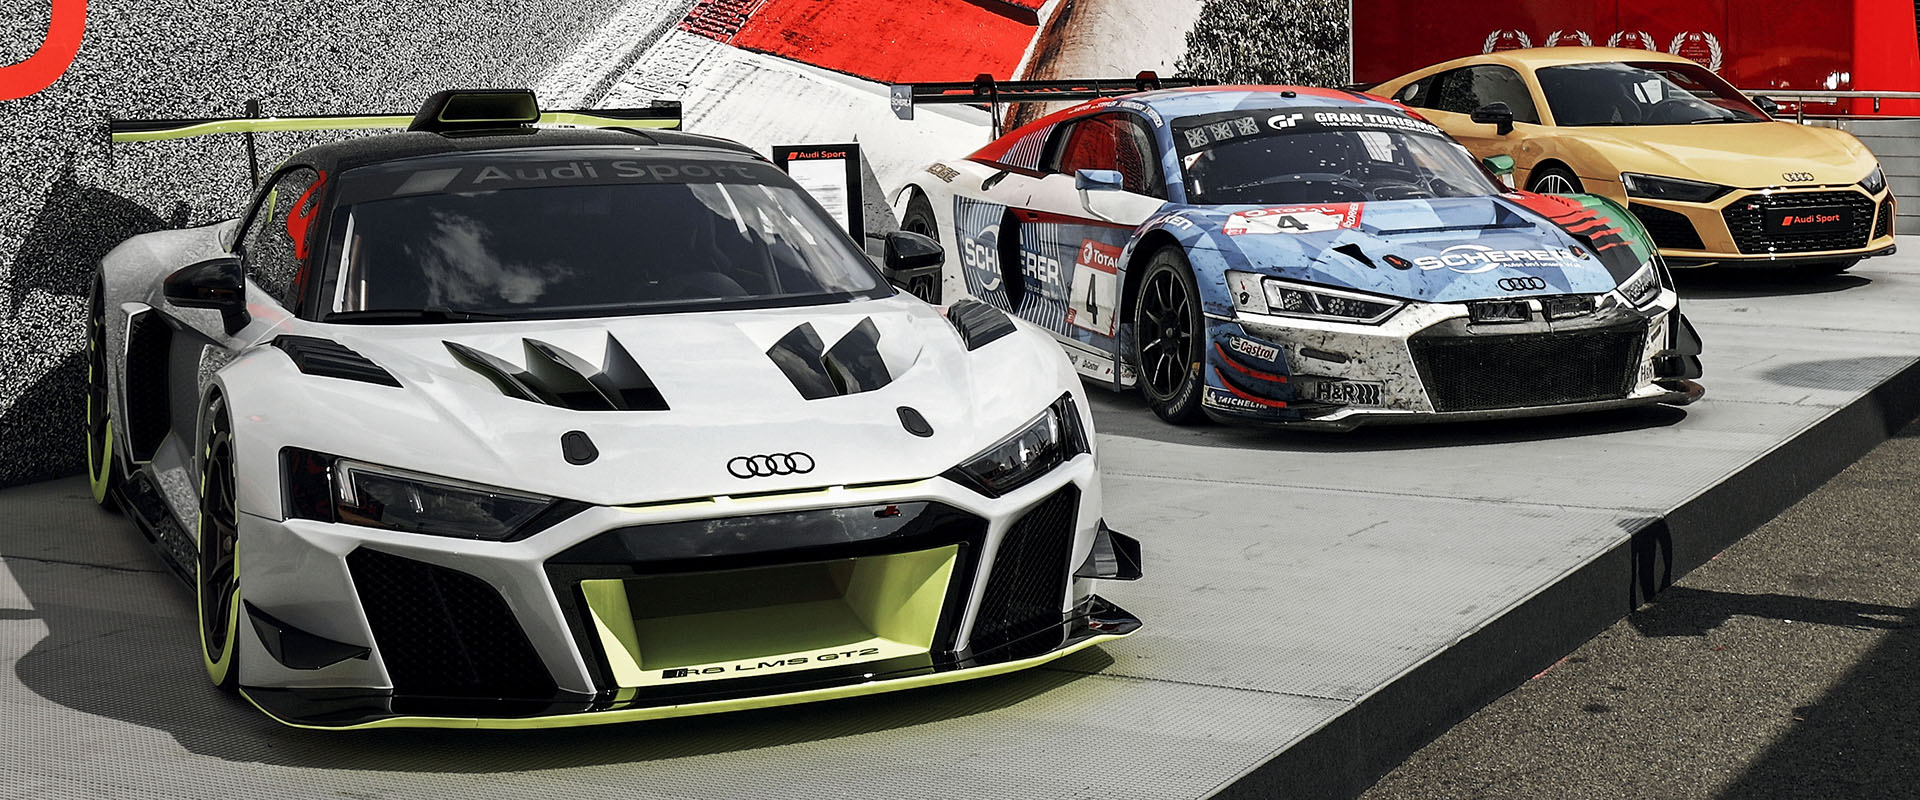 Audi R8 LMS GT2 on display